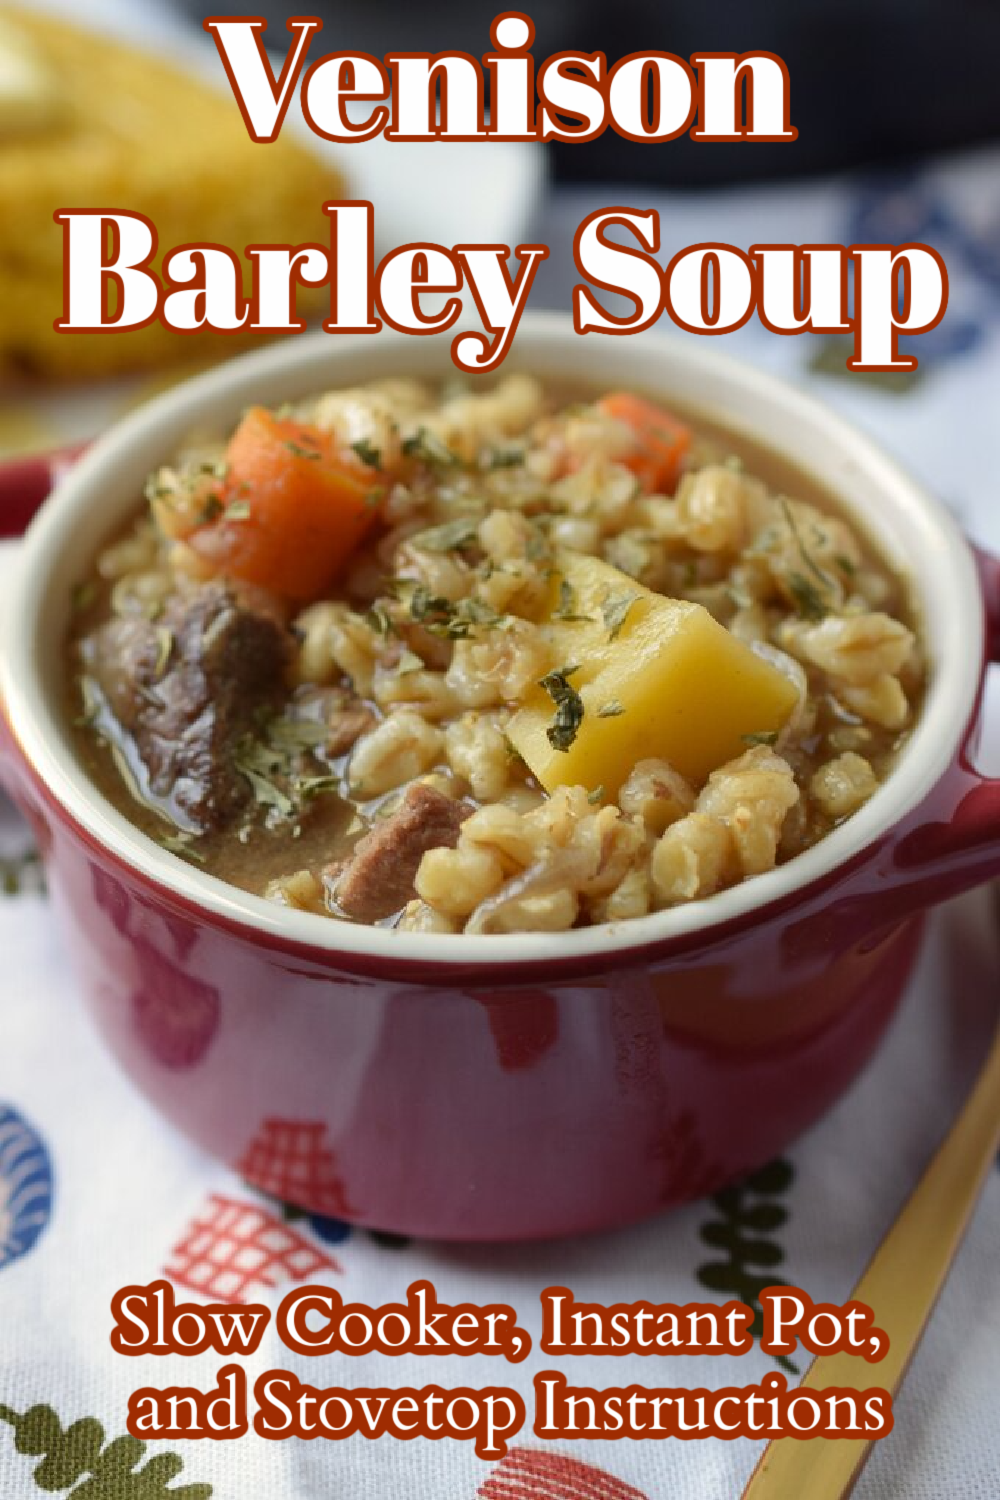 Venison Barley Soup - A delicious spin on classic beef barley soup made with venison instead of beef! Made with classic ingredients such as carrots, potatoes, celery, and more with instructions for cooking the stew in a slow cooker, instant pot, or on the stovetop. Venison Recipe | Venison Soup | Barley Soup